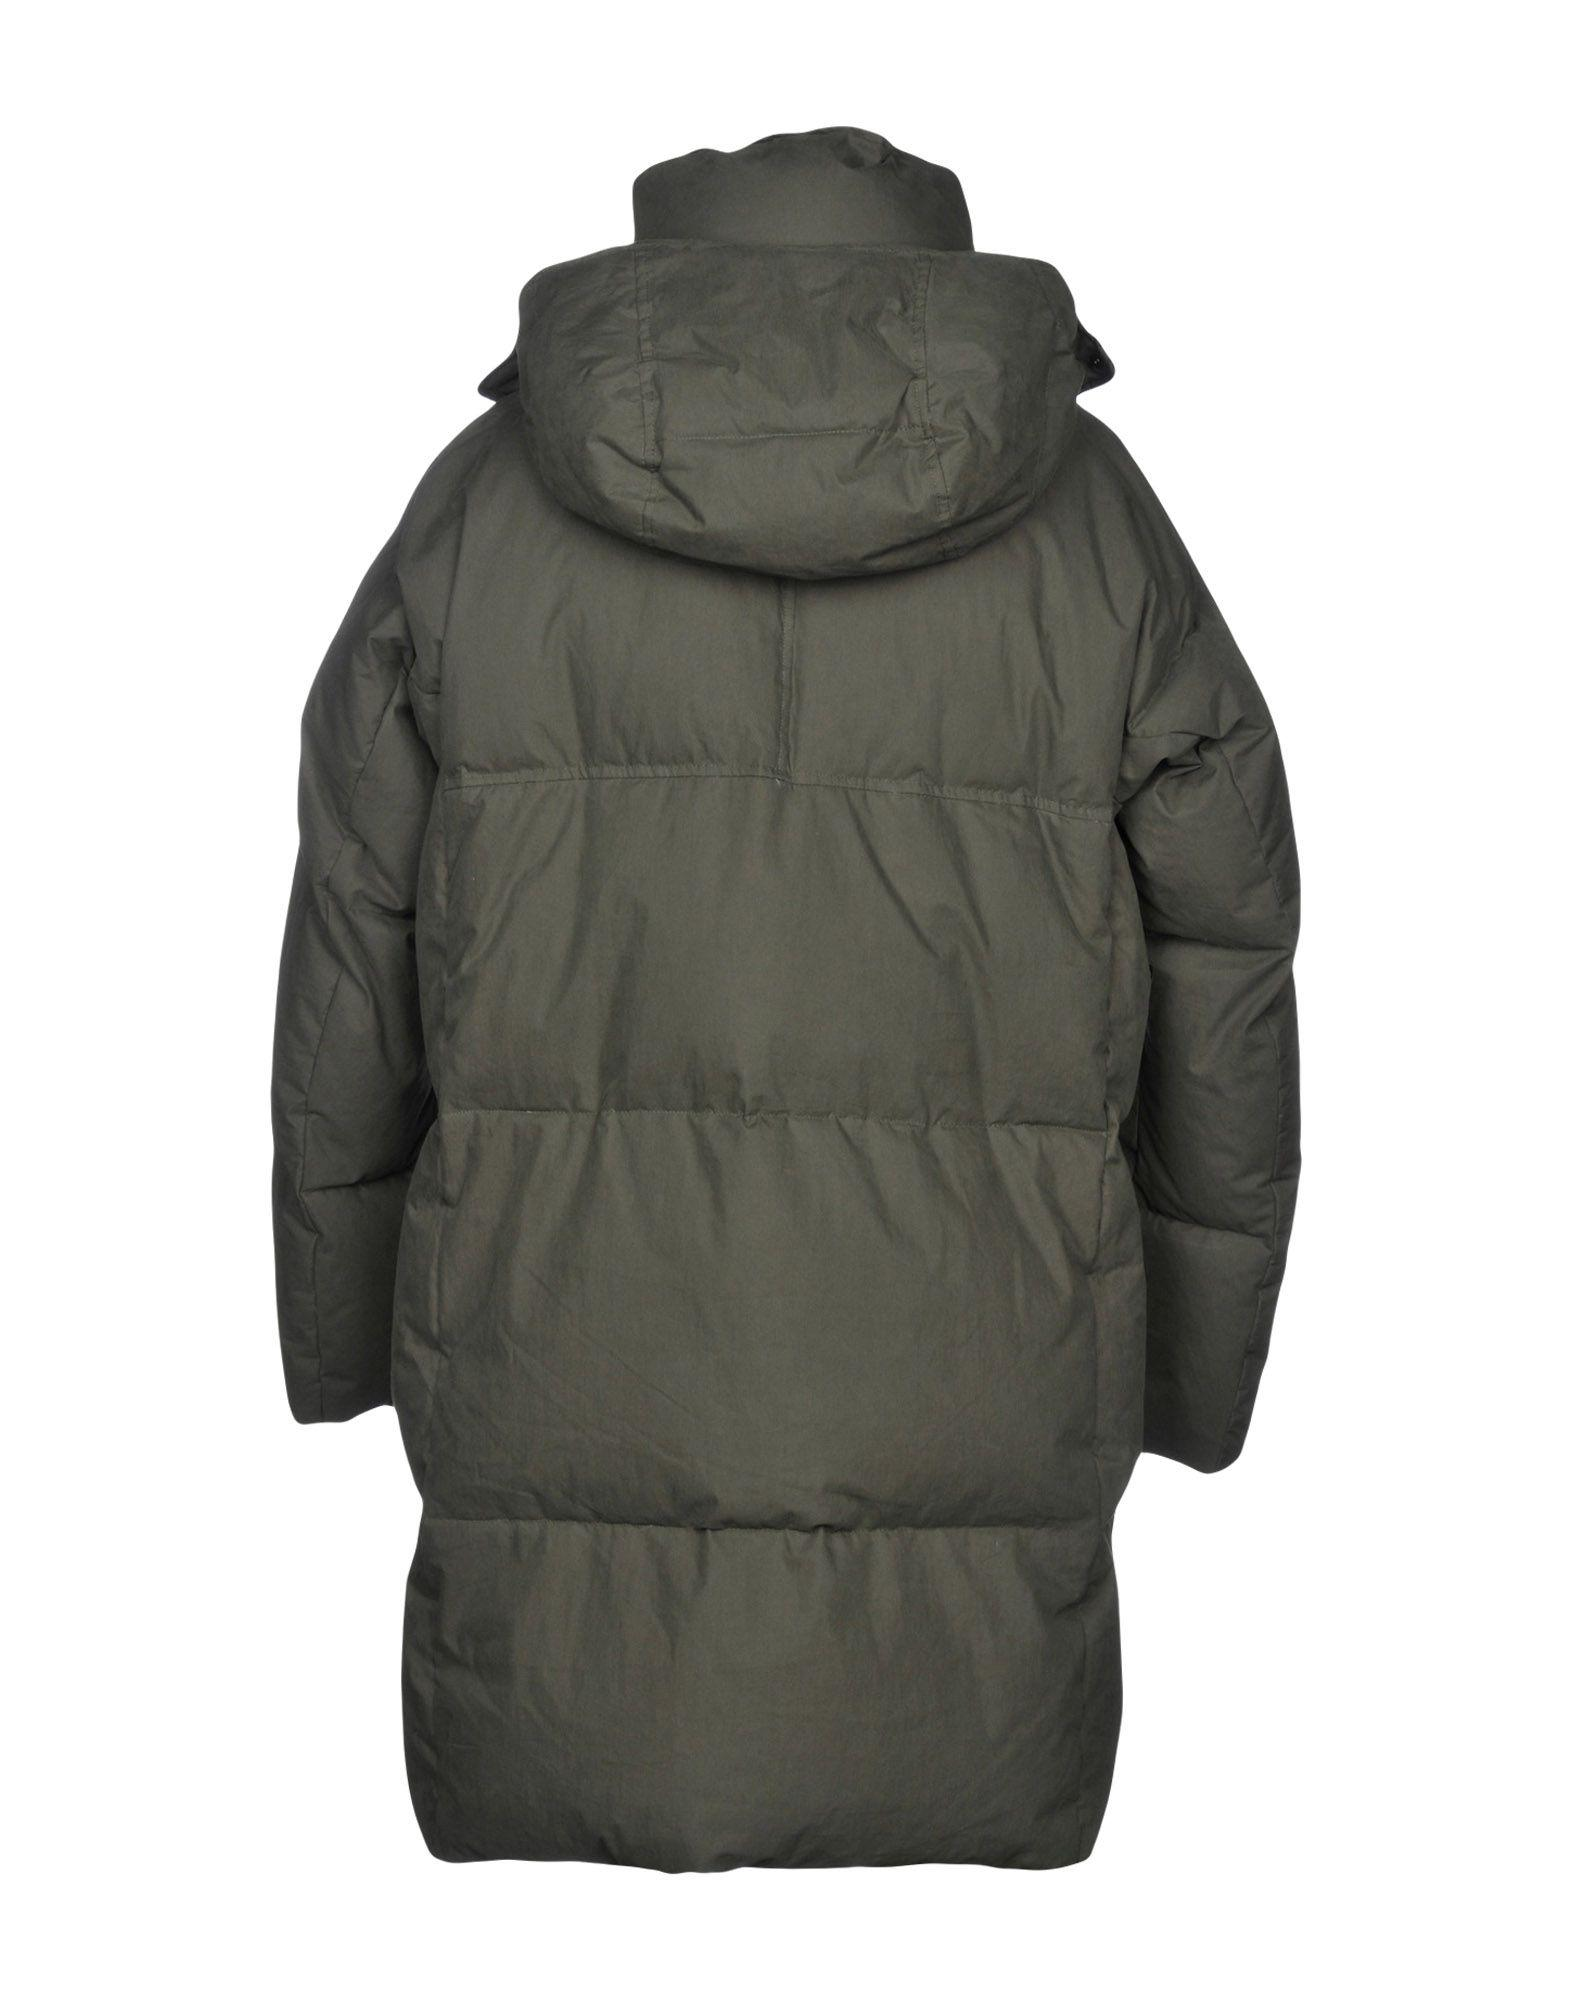 Etudes Studio Cotton Down Jacket in Green for Men